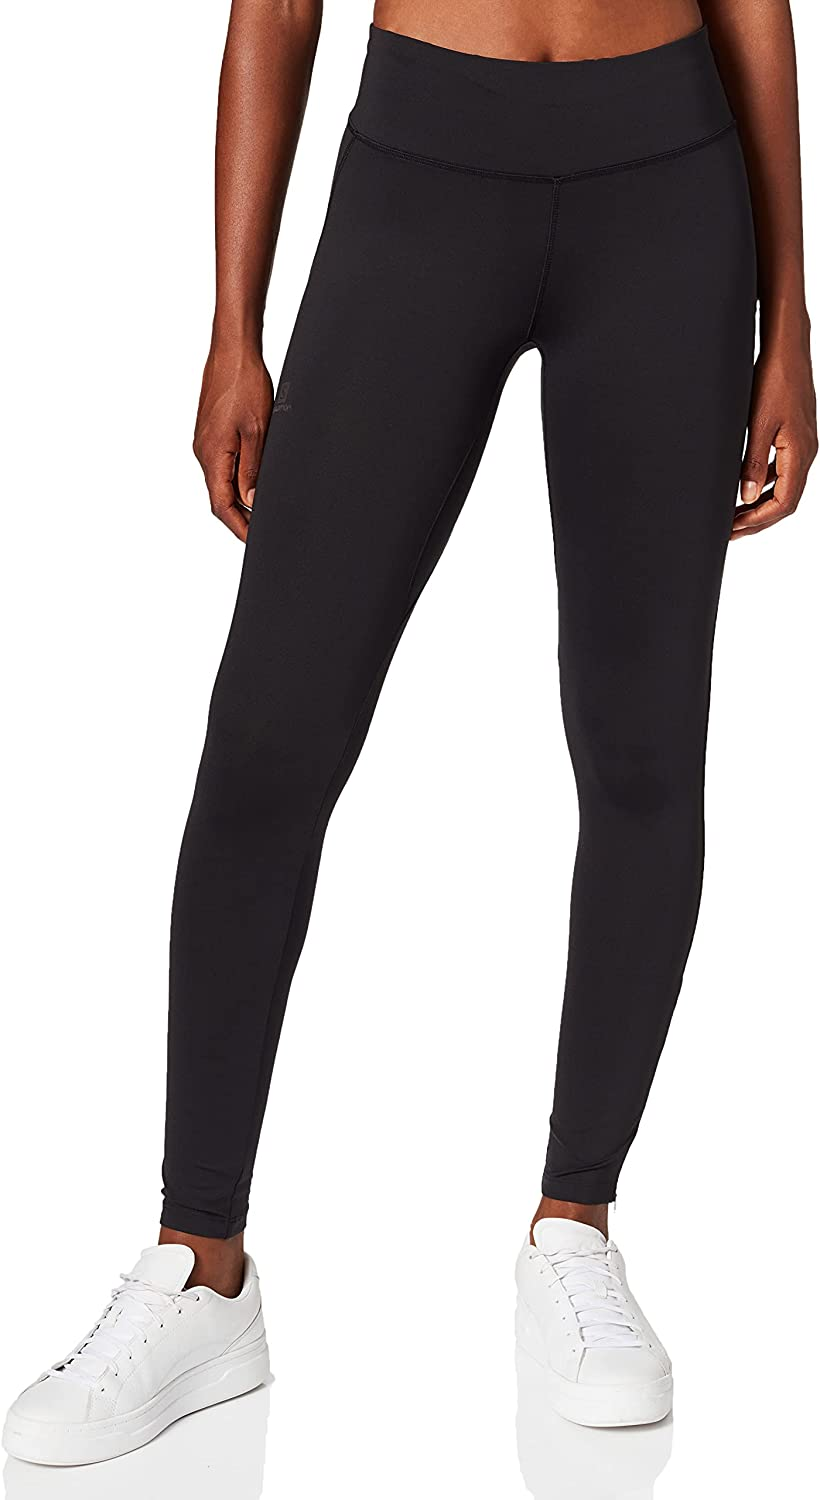 Salomon Women's Agile 70% OFF Outlet Tight Long Credence